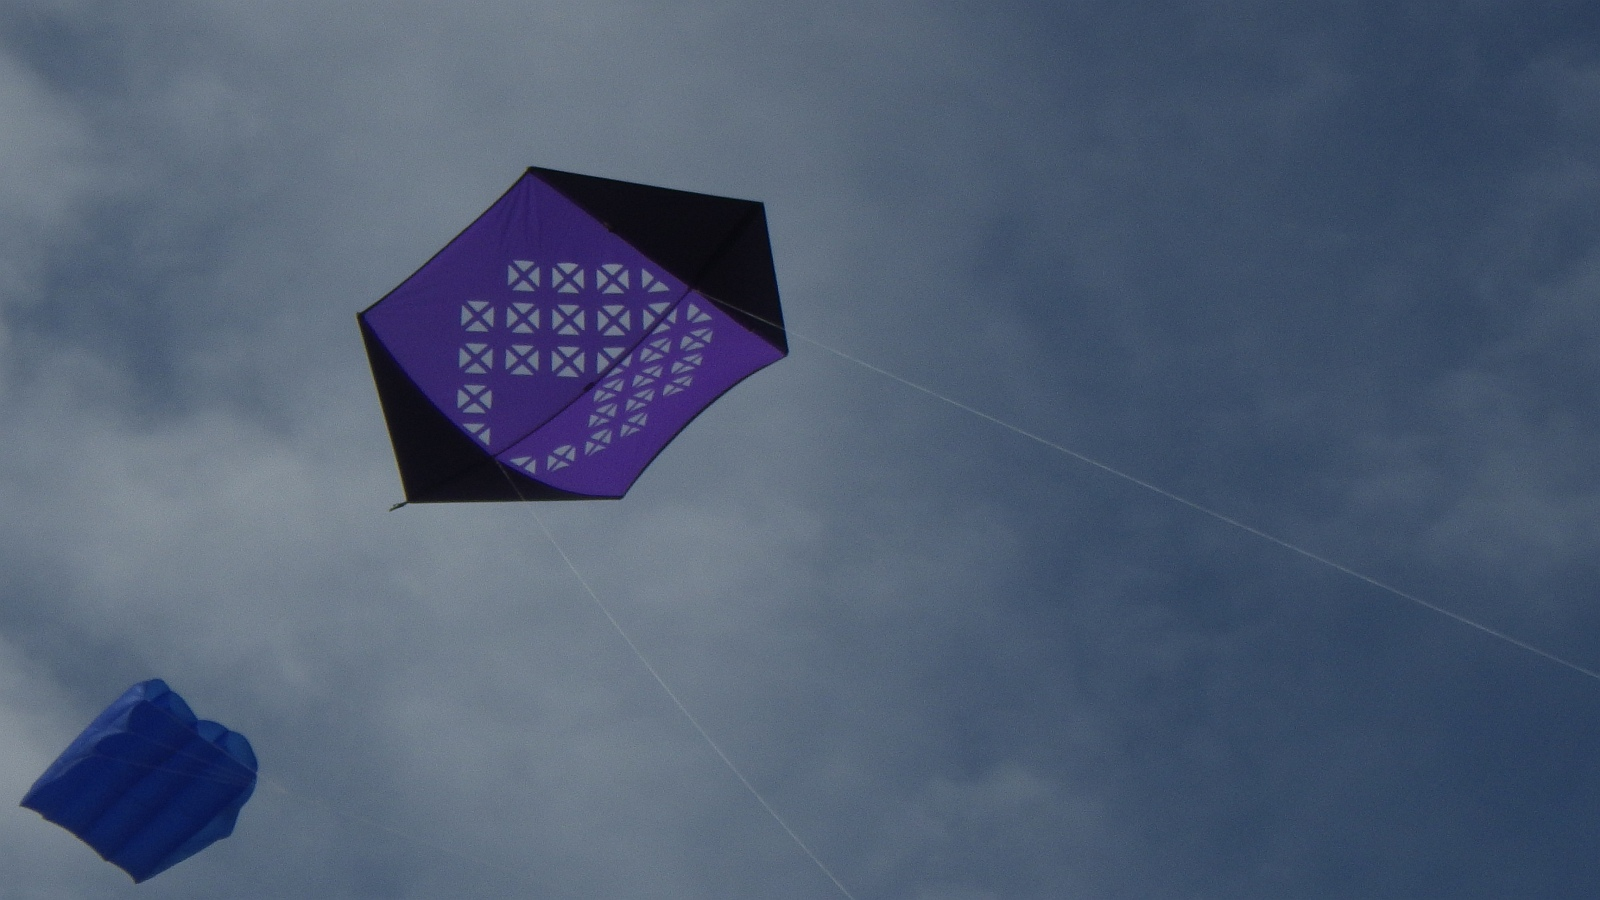 AIKF 2017. A very neatly constructed and decorated Rokkaku kite.